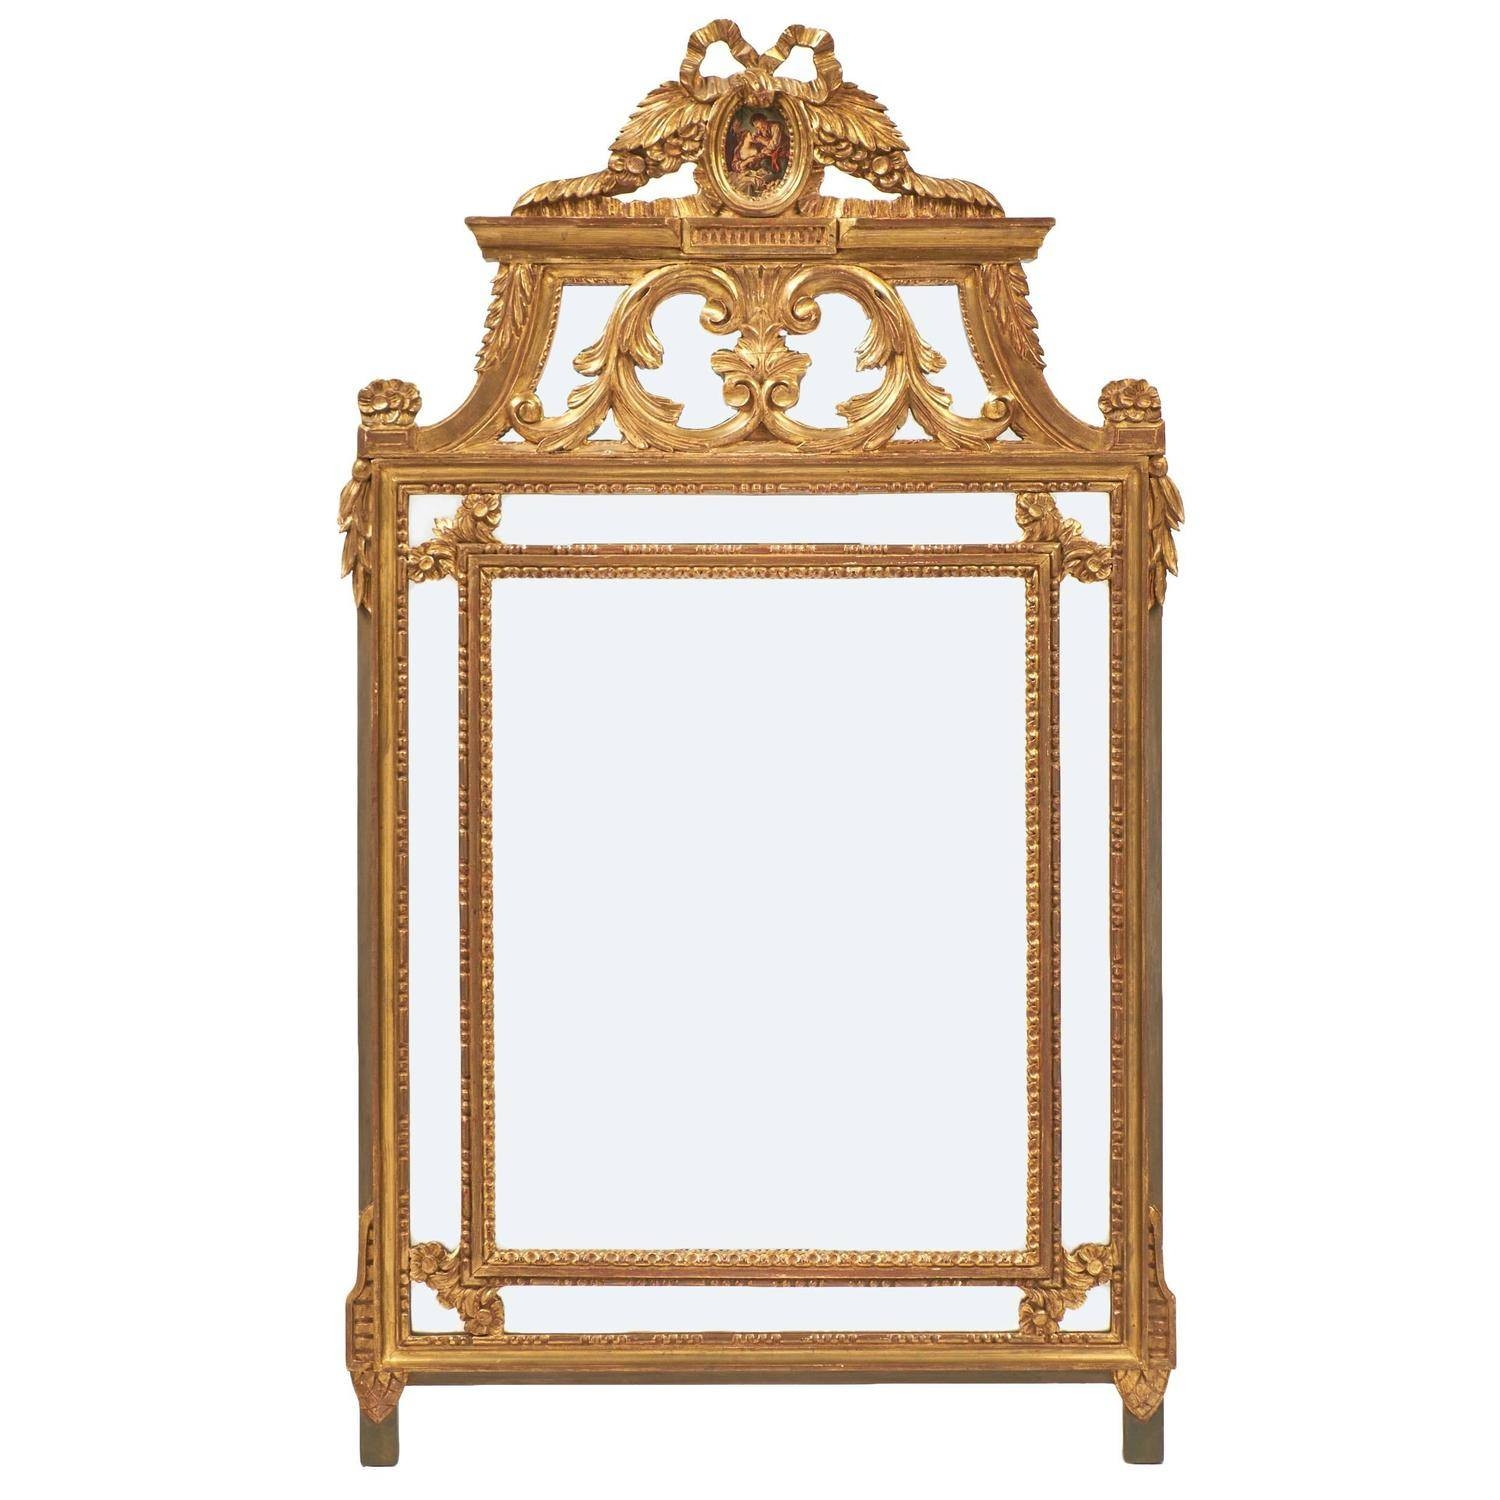 Ornate Gold Leaf Louis Xvi Mirror - Jean Marc Fray intended for Gold Ornate Mirrors (Image 17 of 25)